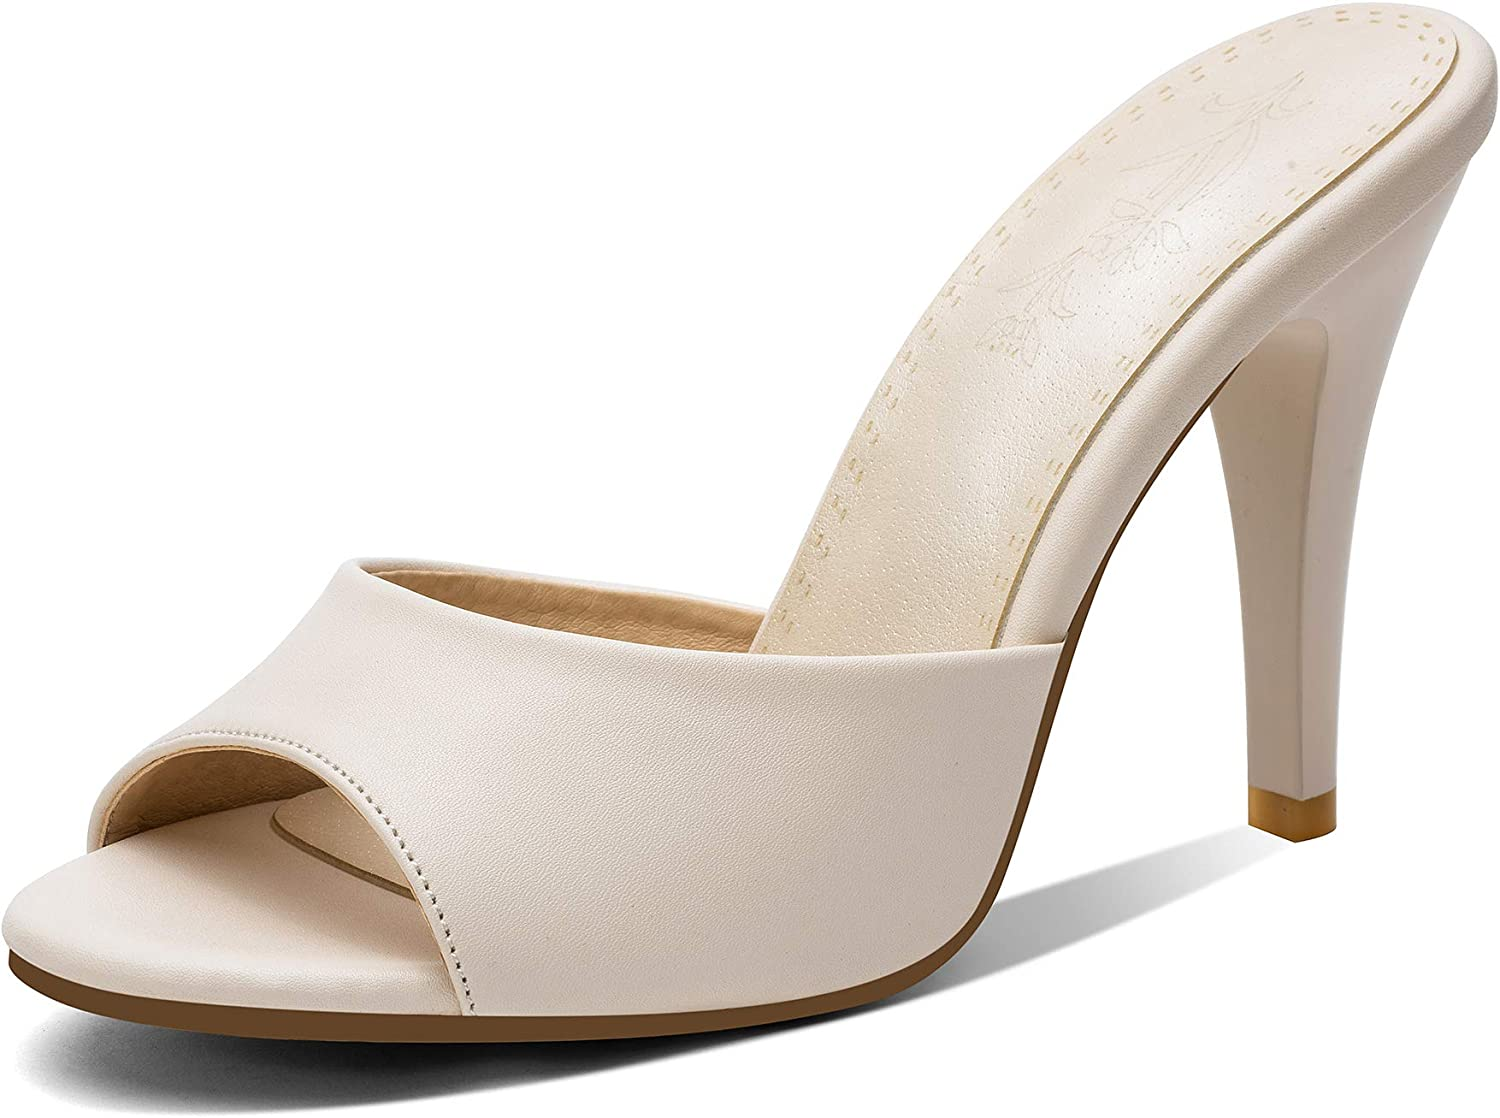 ZUQIN Summer Women Peep Toe High Stiletto Sandals 67% Ranking TOP14 OFF of fixed price Heel Slippers